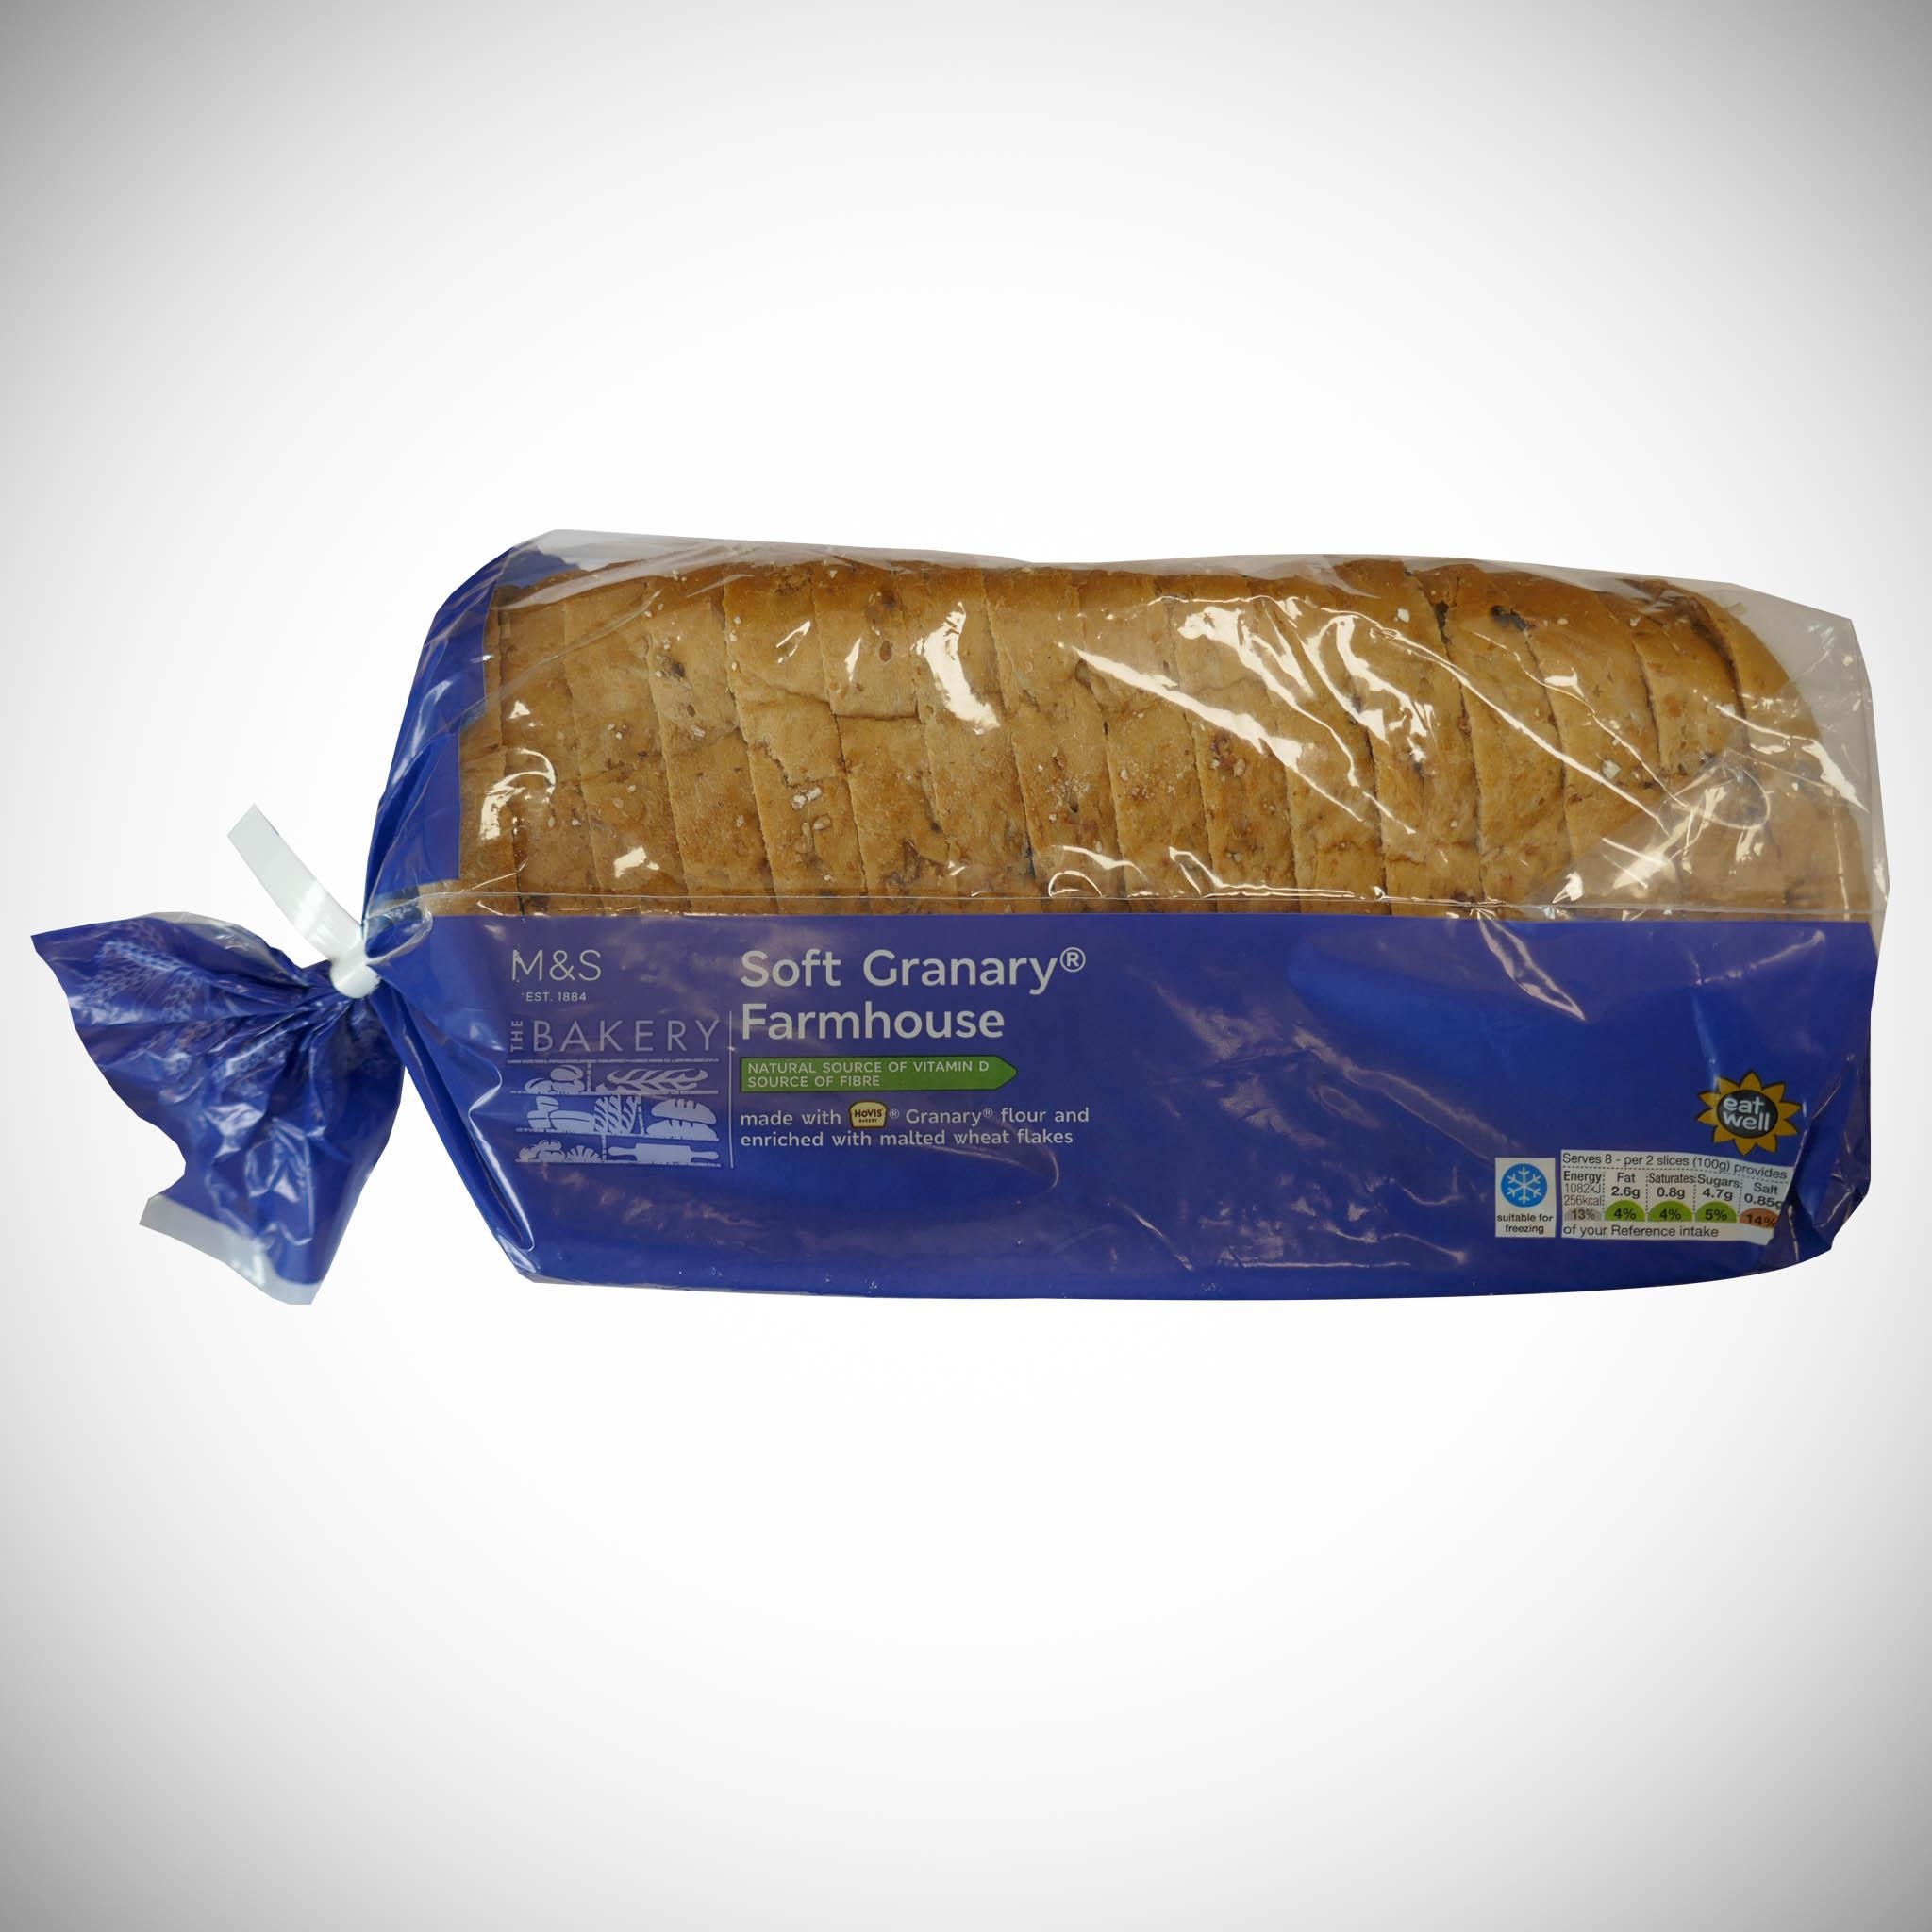 Soft Granary Farmhouse 800g